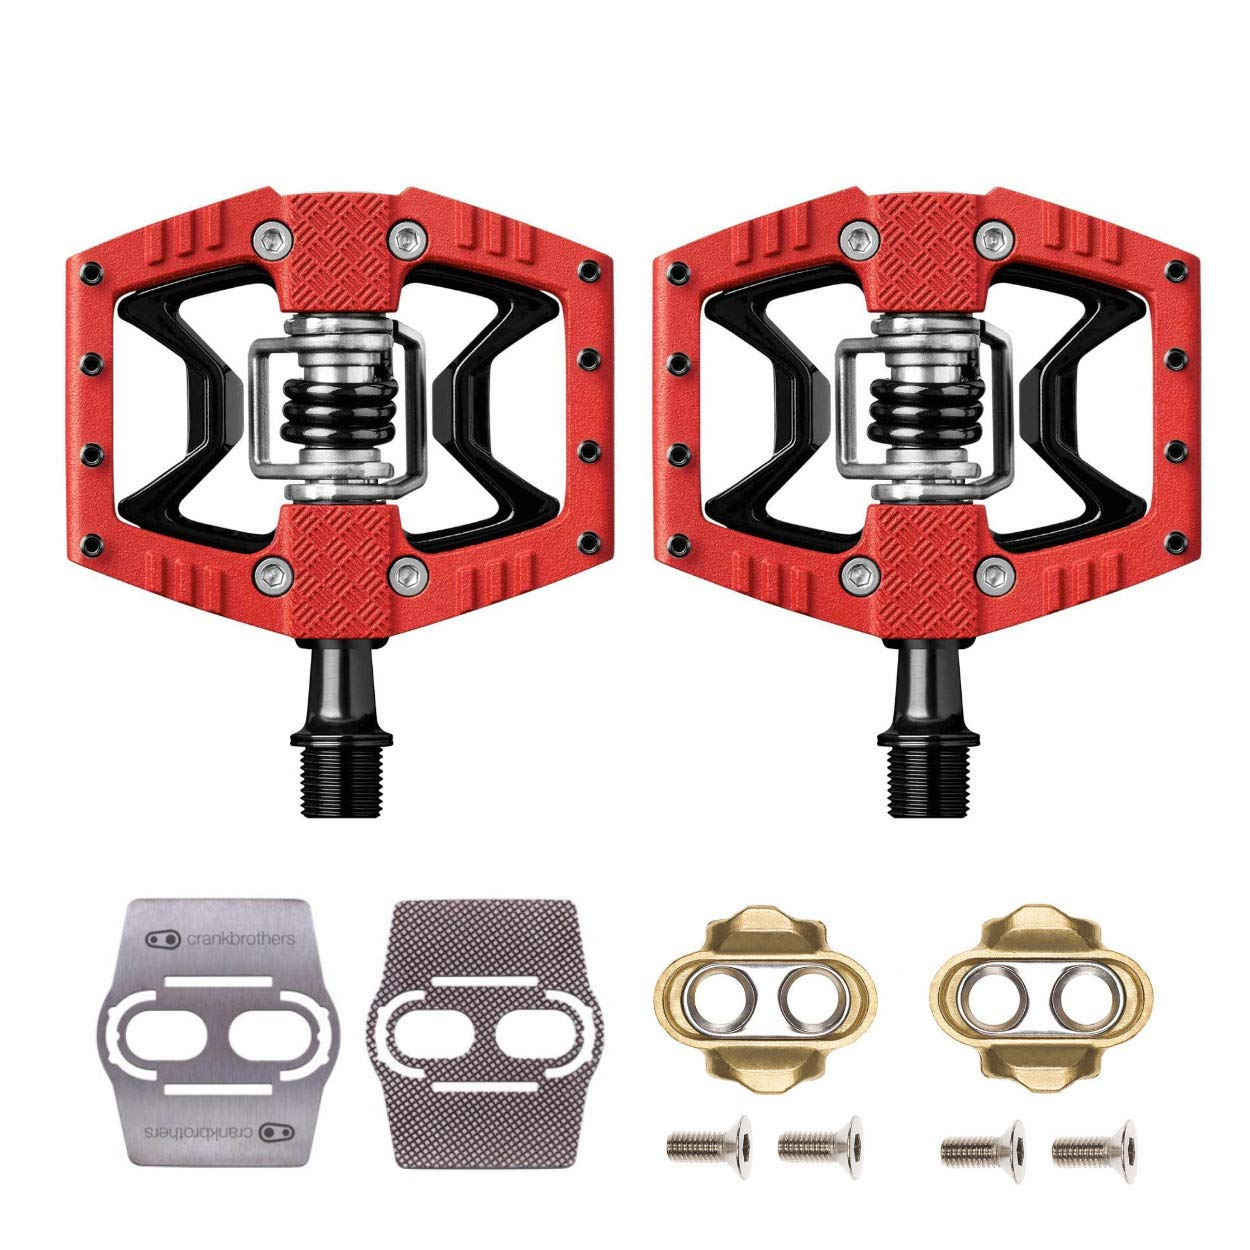 3d114c8483bc Amazon.com : Crankbrothers Double Shot 3 Bike Pedals Pair (Red/Black) with Premium  Cleats and Shoe Shields : Sports & Outdoors